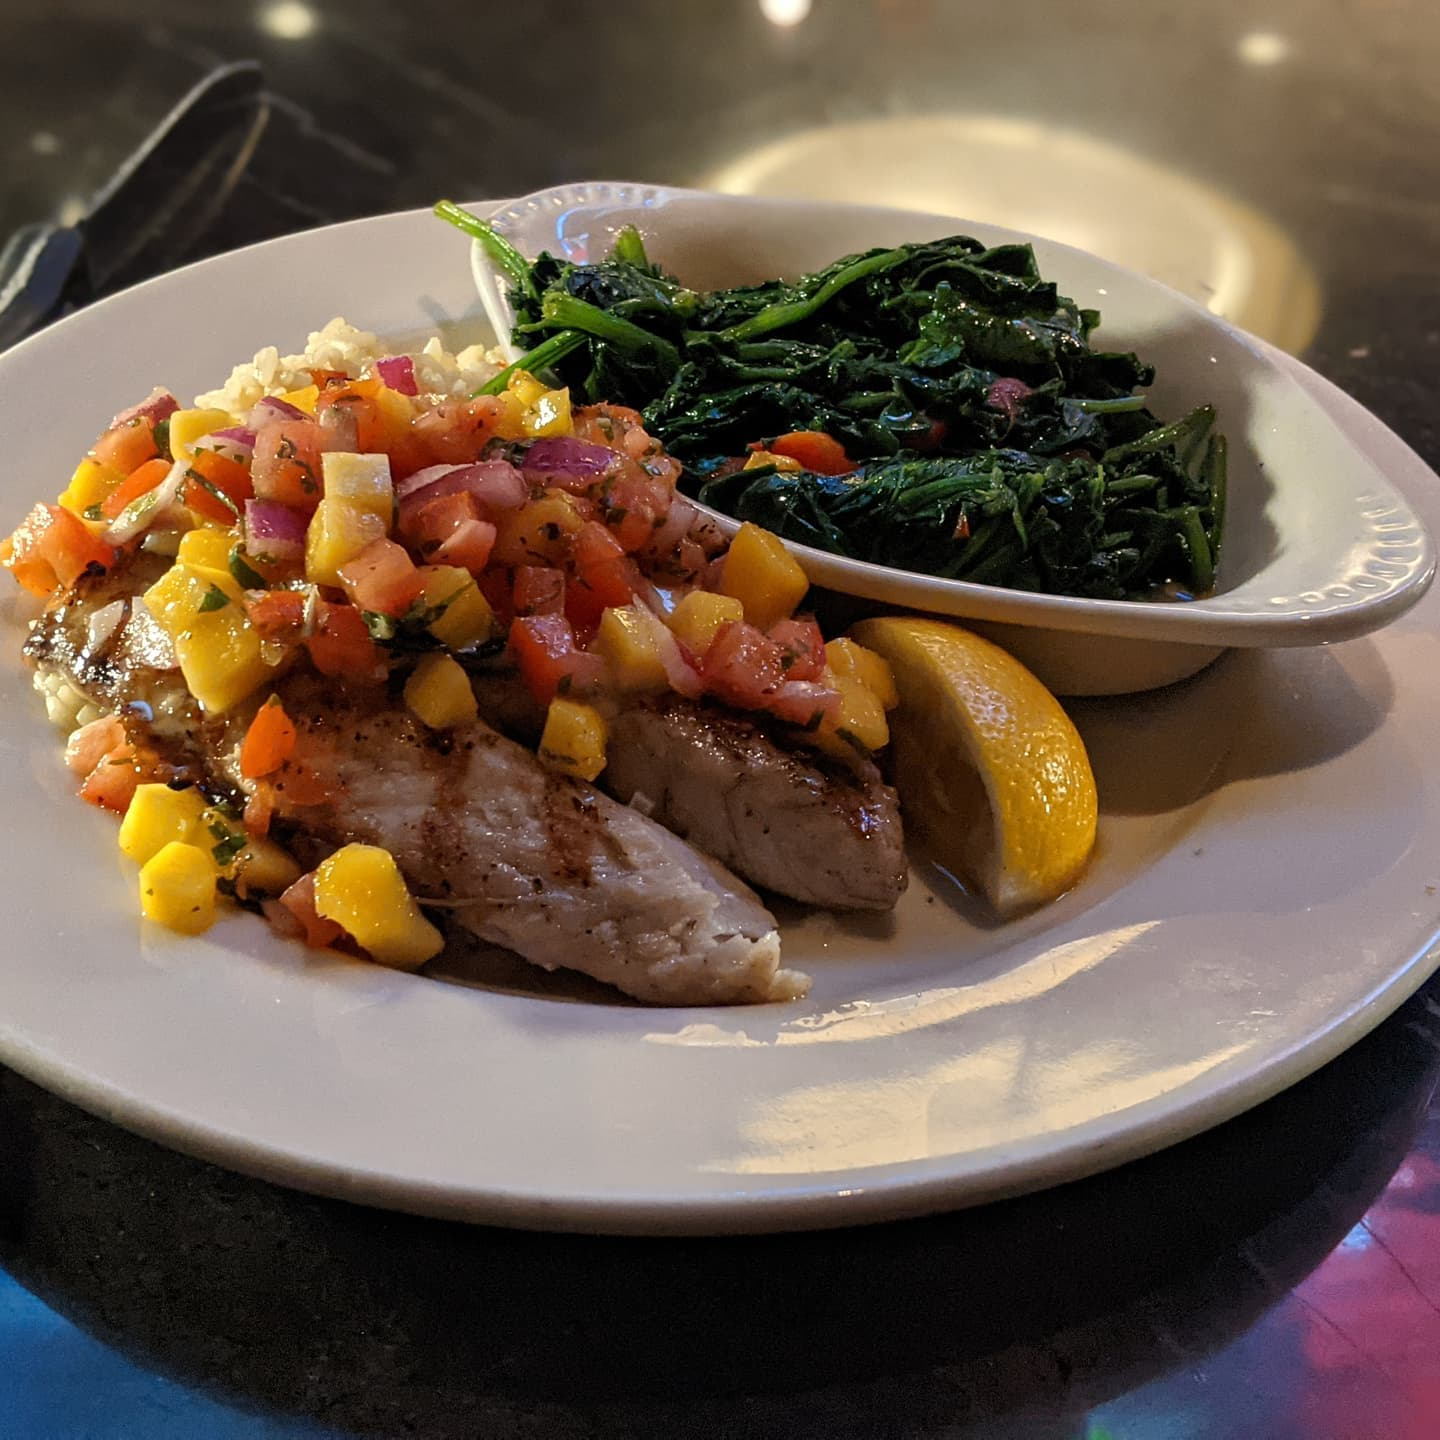 Semi normal #foodporn service resumed. Grilled barramundi with mango salsa and a side of sauteed spinach. And was delicious by the way!